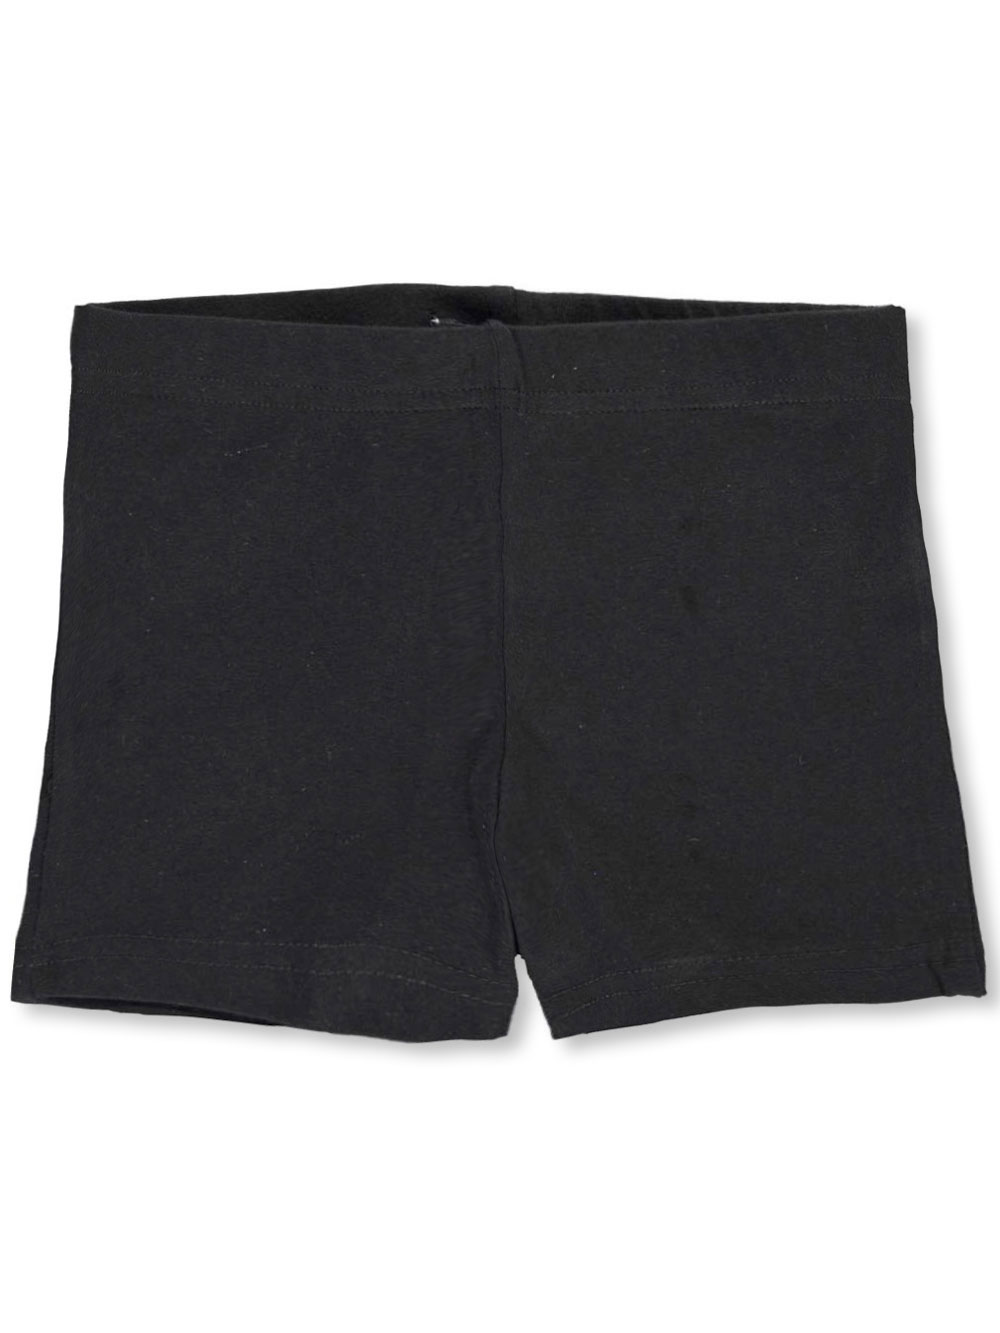 Size 5 Shorts for Girls